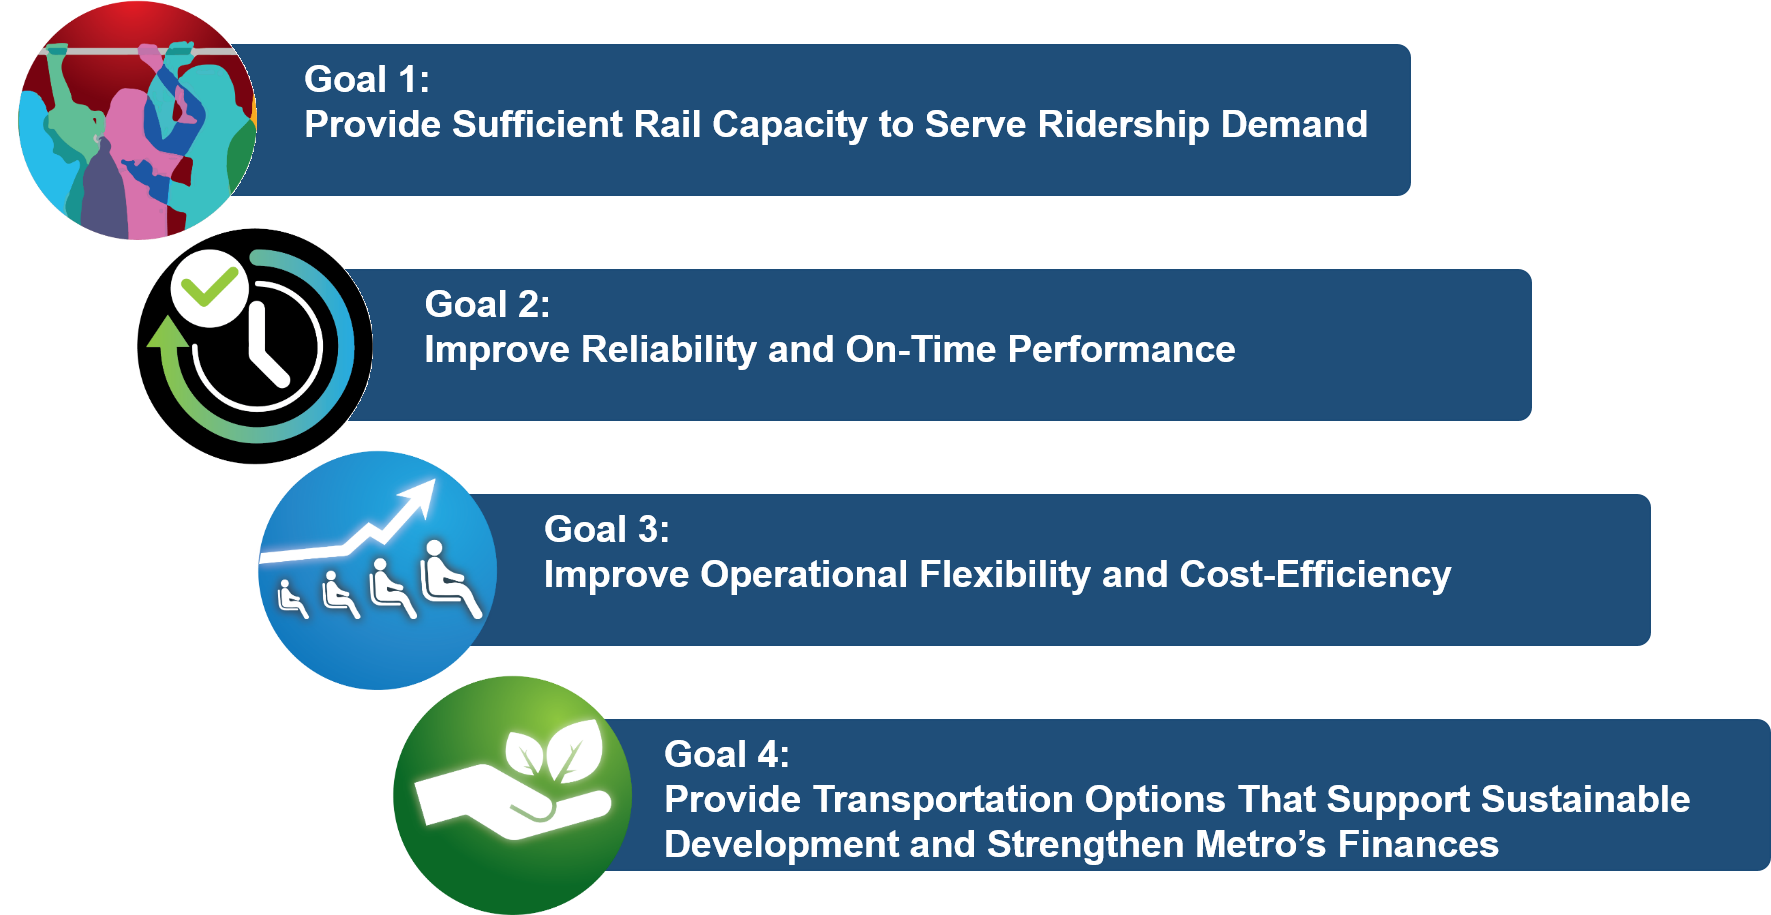 A graphic showing the four goals for transit service identified by the BOS Study. Goal 1 is to provide sufficient rail capacity to serve ridership demand. Goal 2 is to improve reliability and on time performance. Goal 3 is to improve operational flexibility and cost-efficiency. Goal 4 is to provide transportation options that support sustainable development and strengthen Metro's finances.